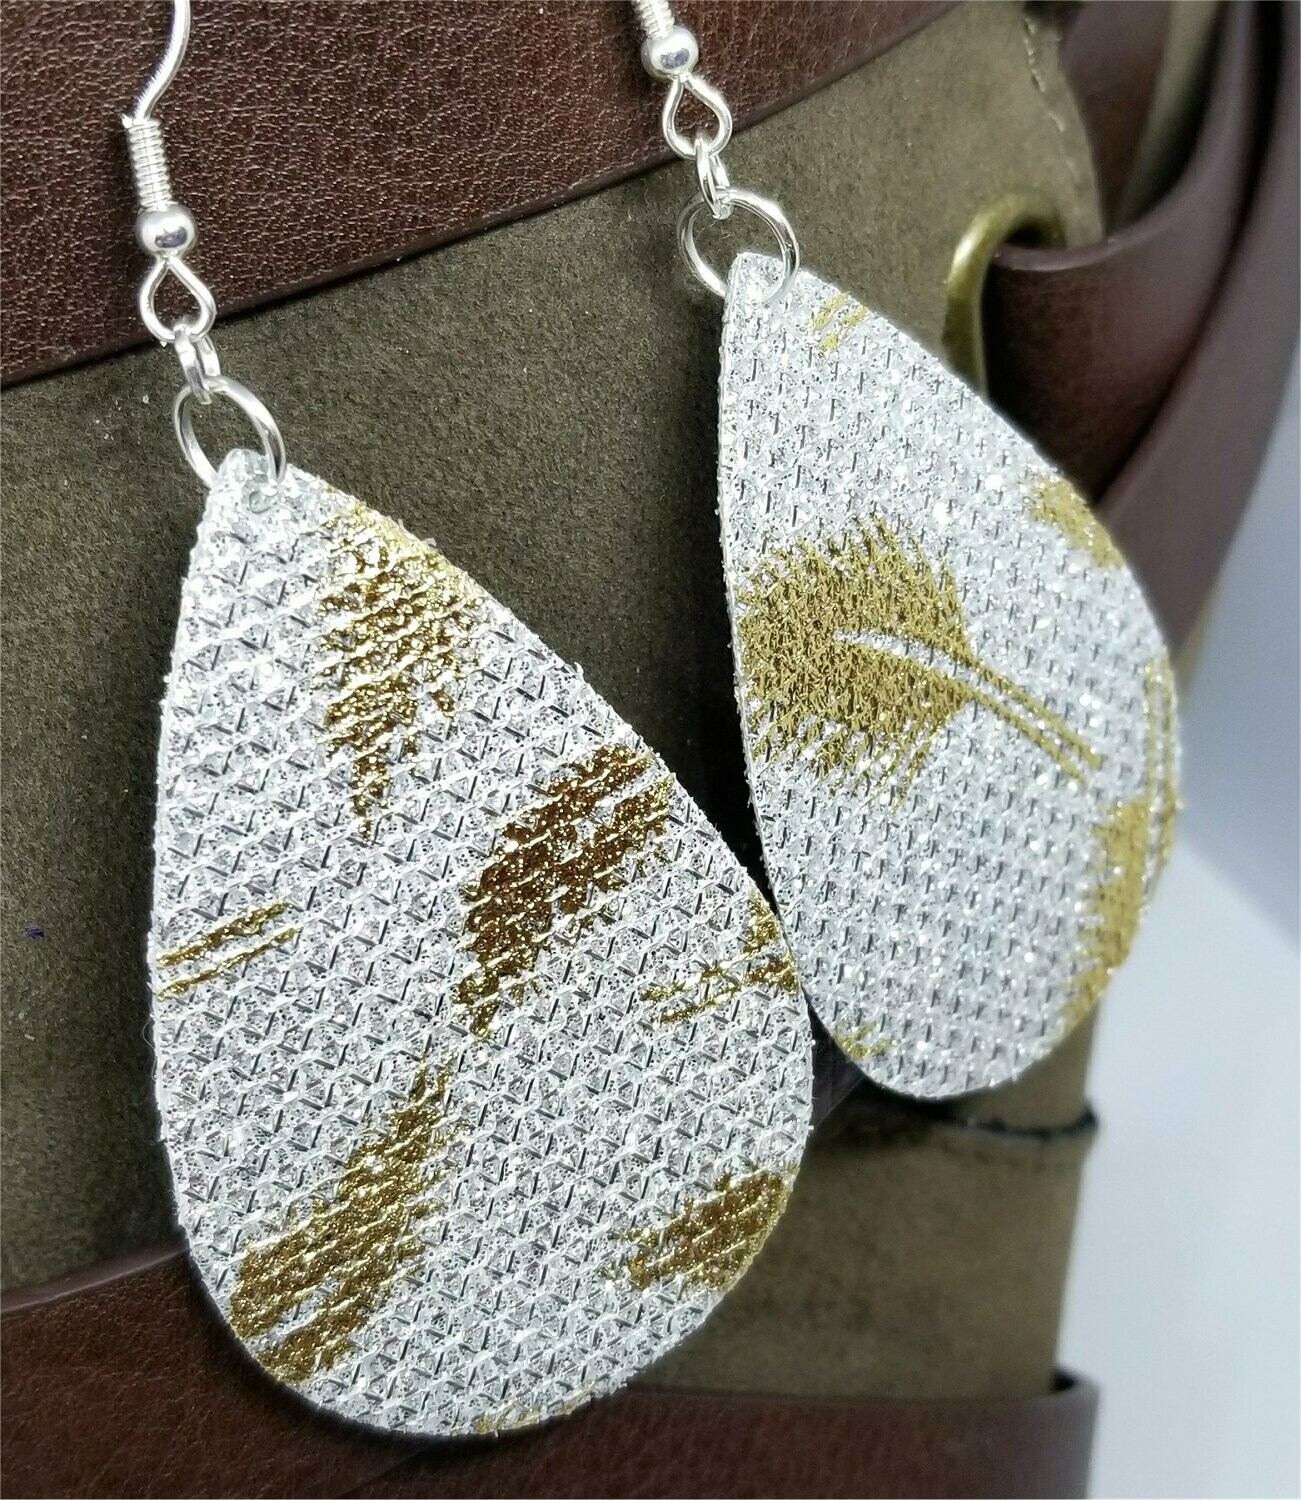 Silver Glittering FAUX Leather Teardrop Earrings with Gold Metallic Feathers Printed On Them